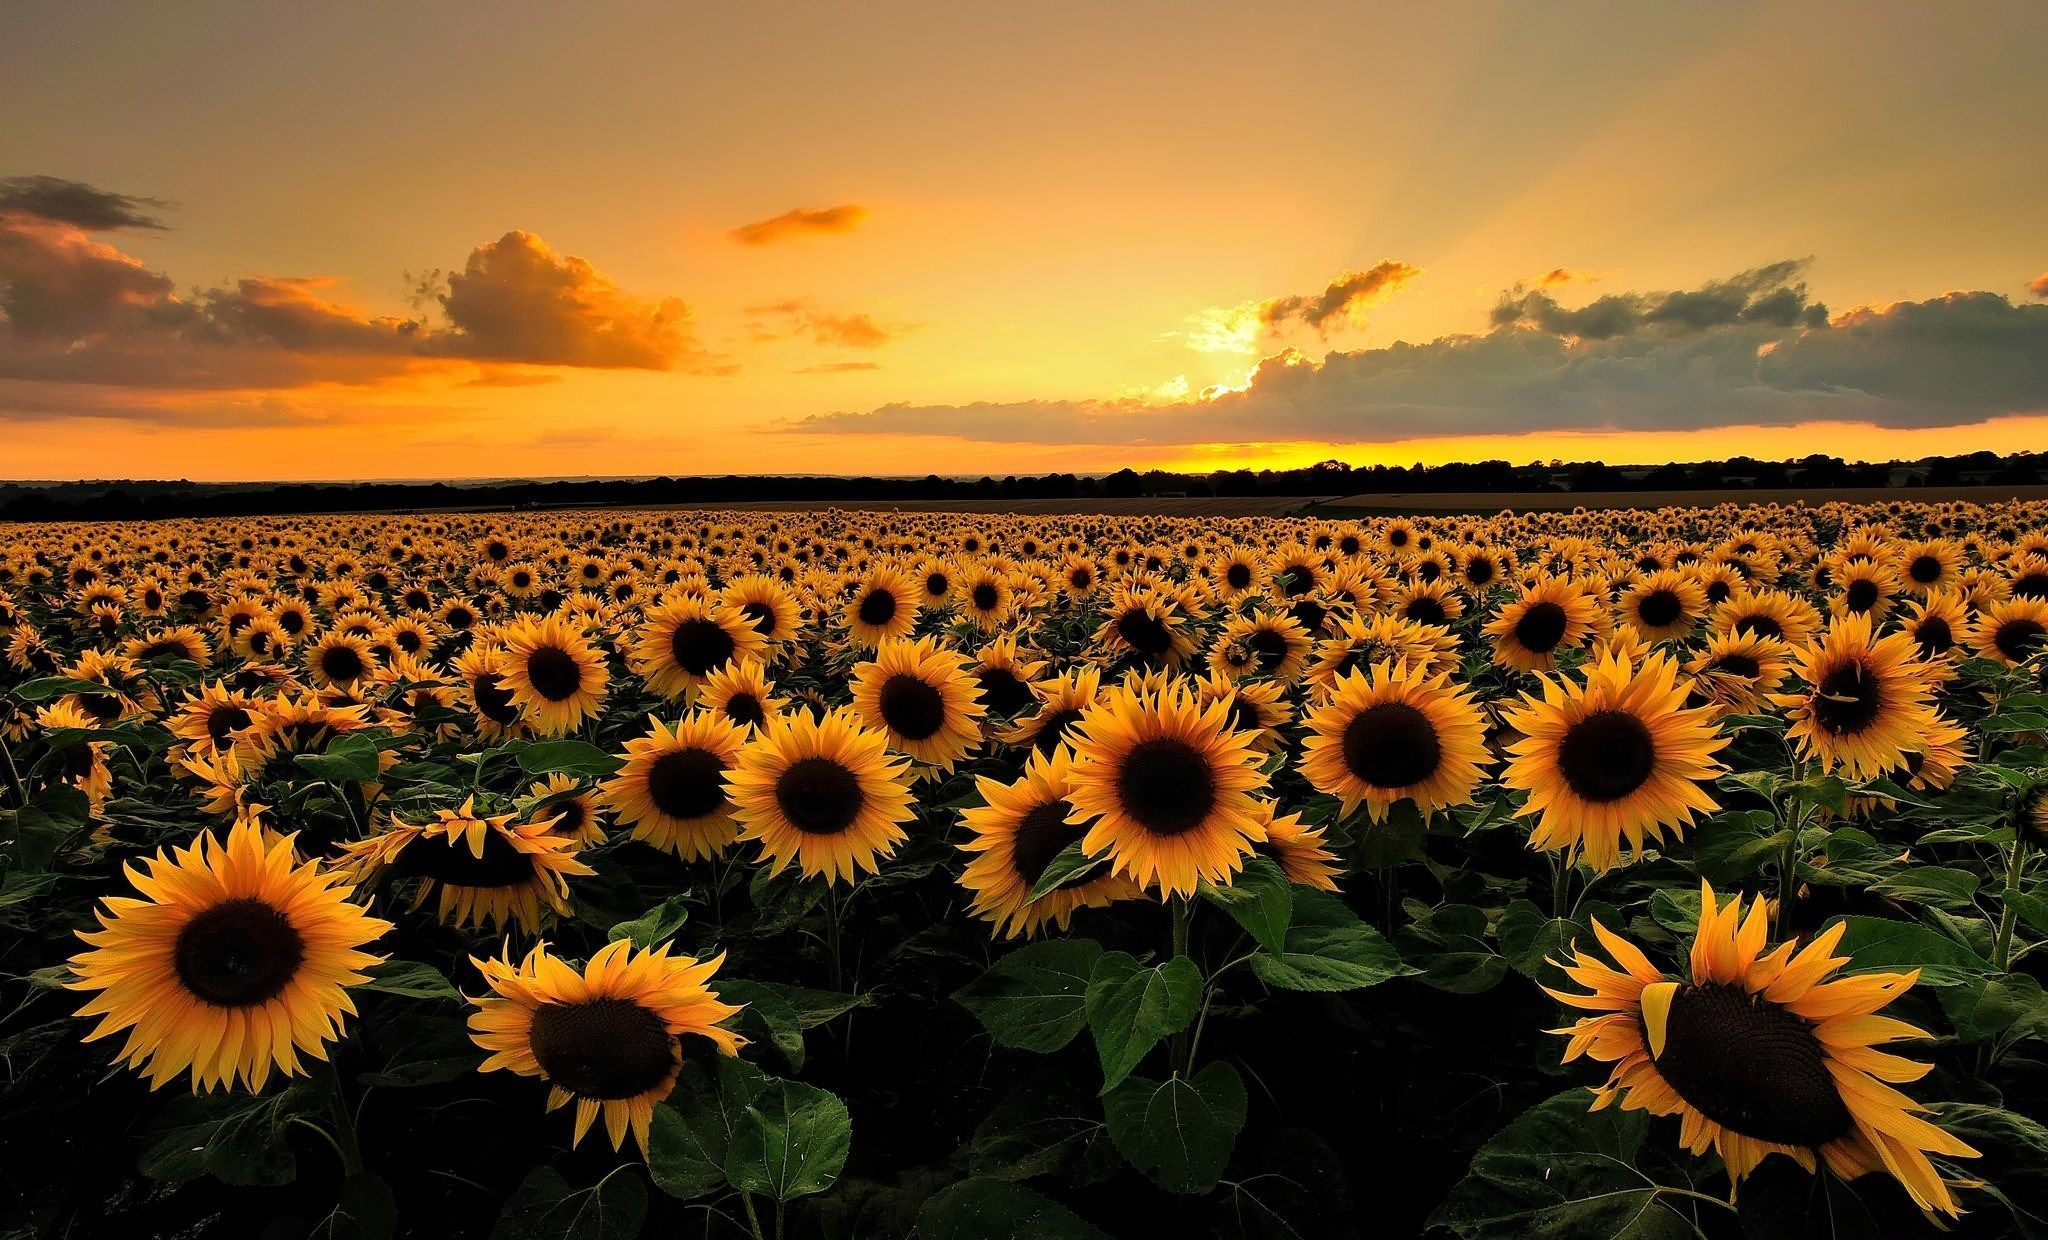 Sunflower Sunset Laptop Wallpapers Top Free Sunflower Sunset Laptop Backgrounds Wallpaperaccess